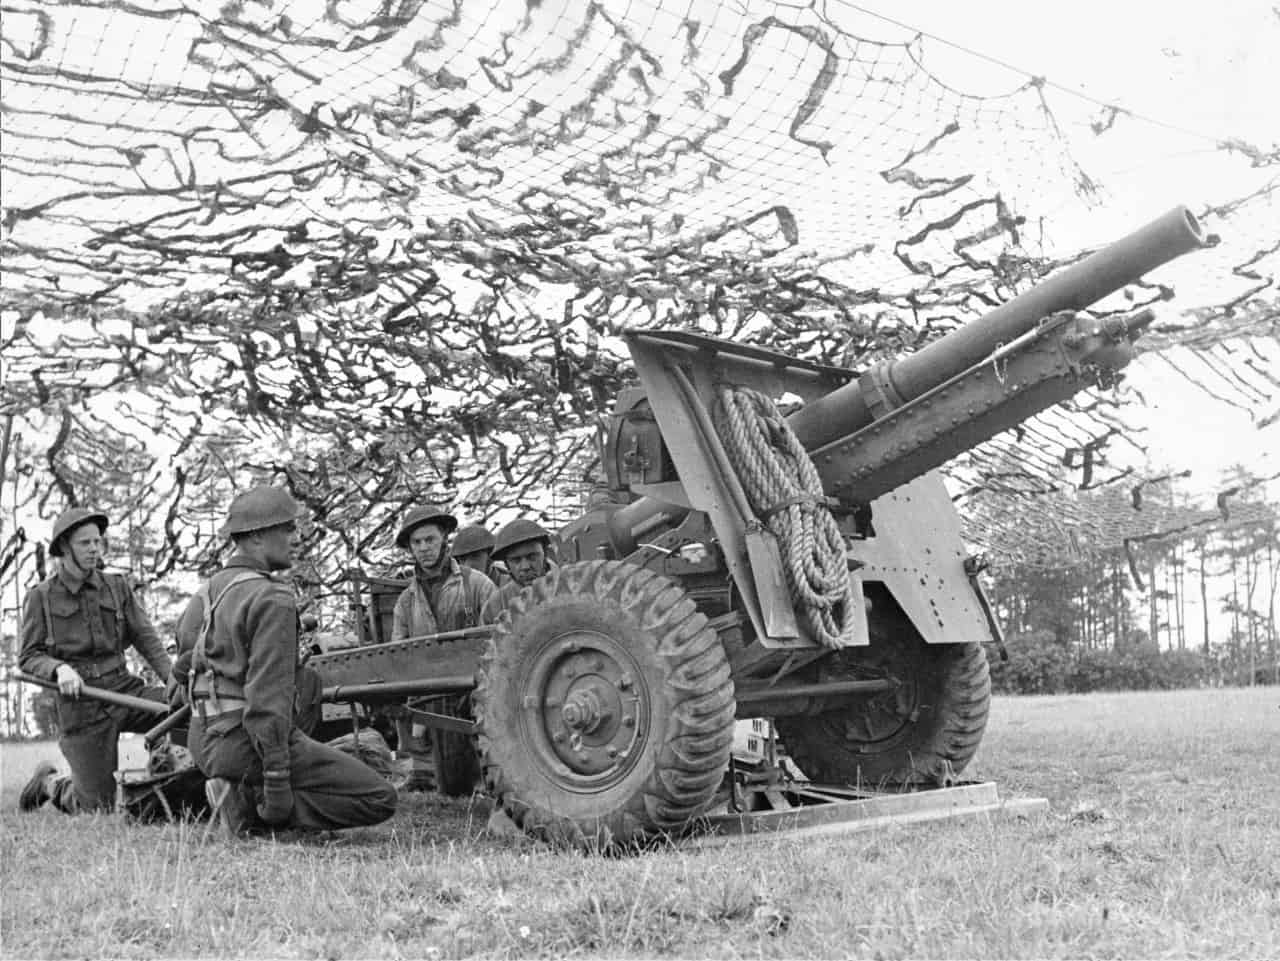 25-Pounder-late-1940s-2